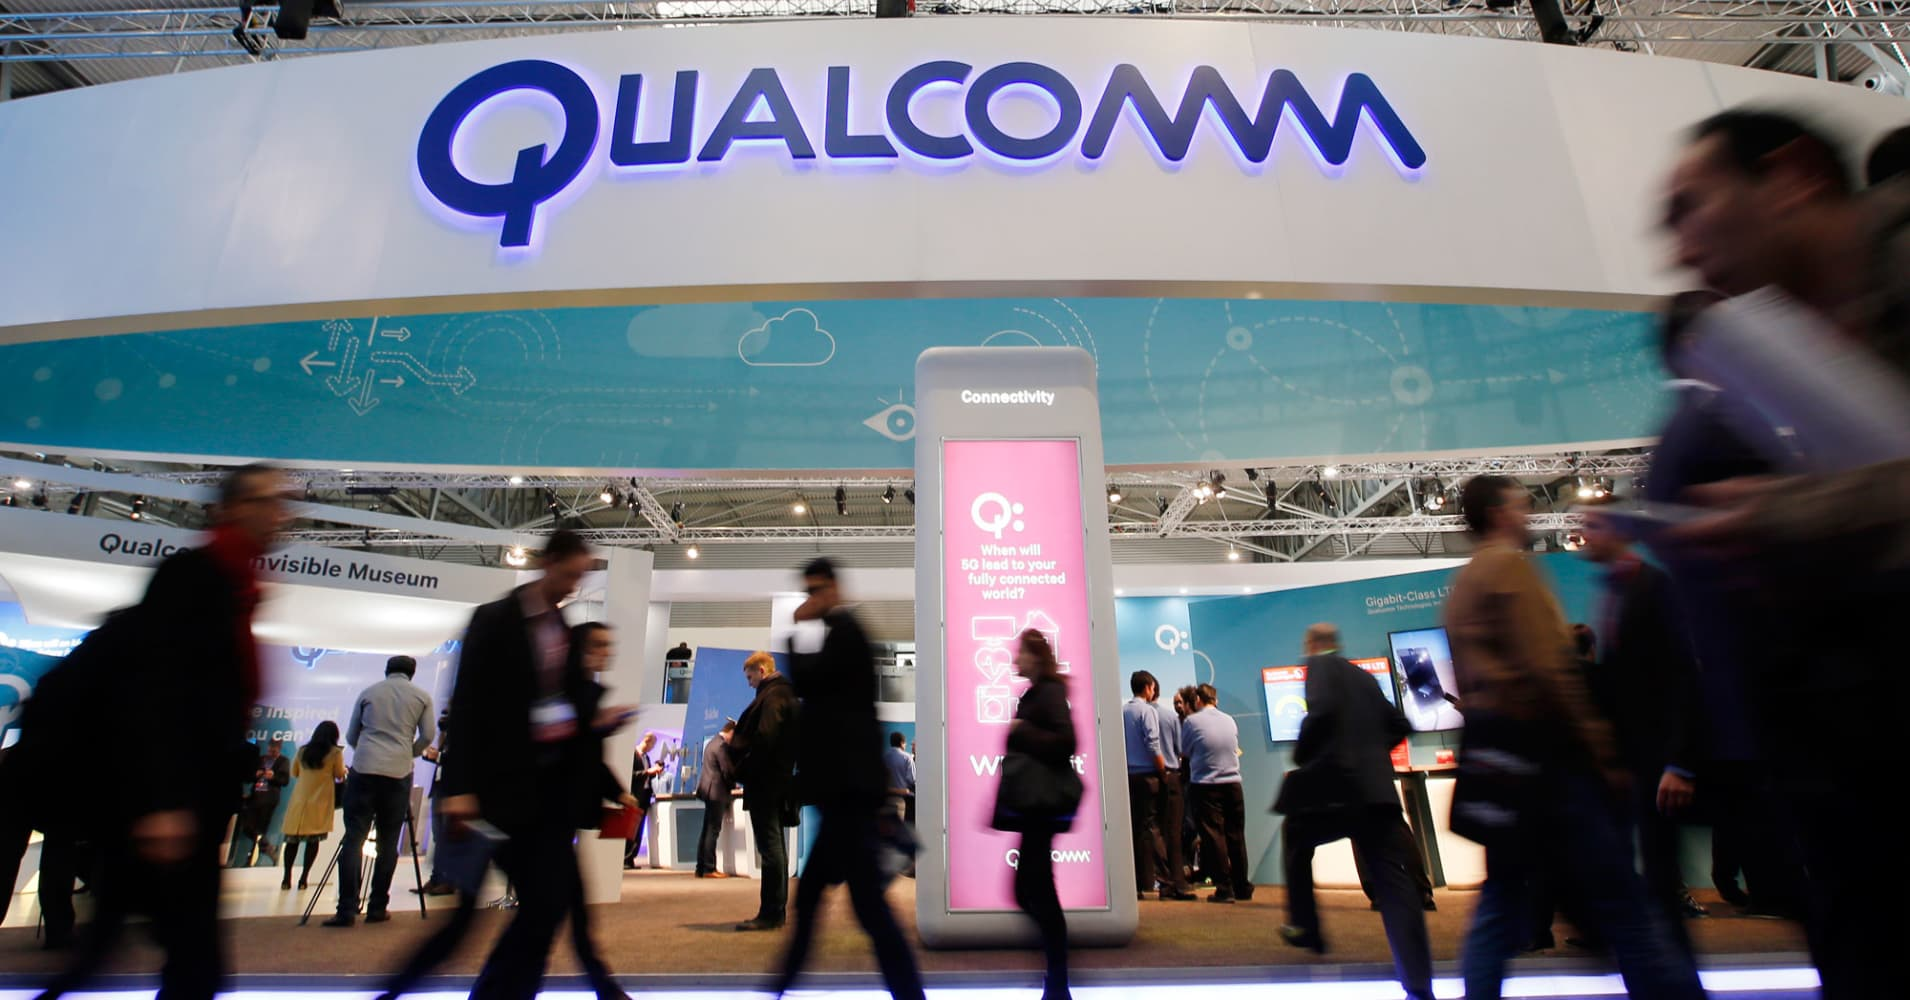 Qualcomm's Paul Jacobs: How to lead a tech giant